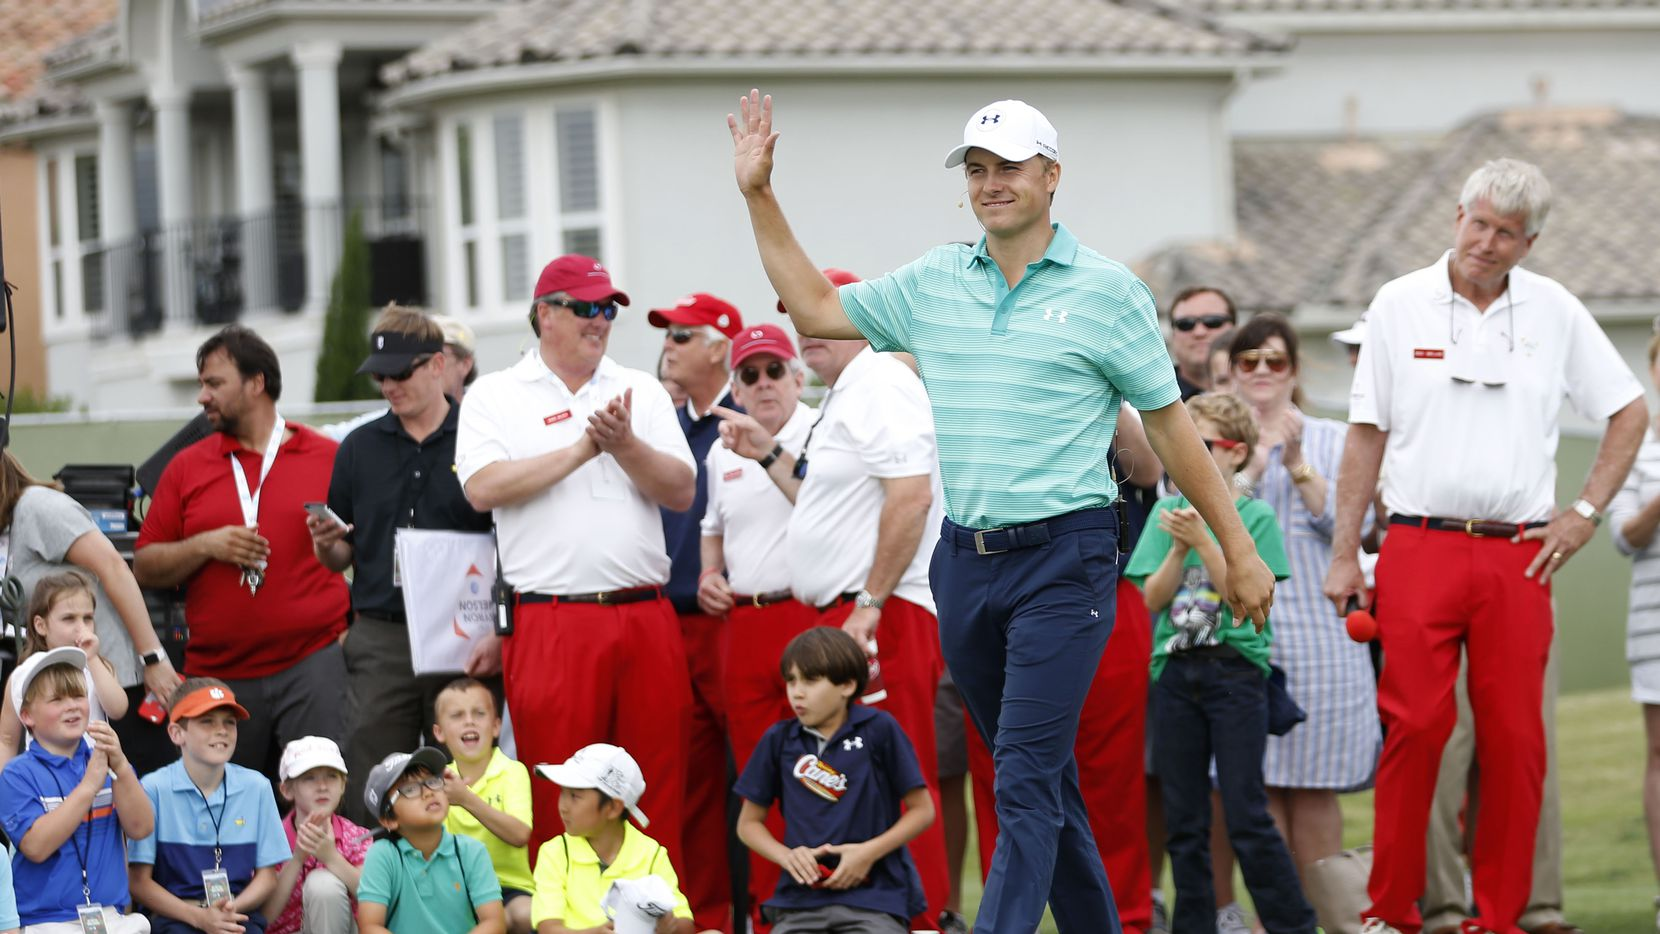 Jordan Spieth waves to the crowd as he is introduced  during a youth golf clinic at TPC Four Seasons in Irving, on Tuesday, May 17, 2016, before last year's Byron Nelson tournament. Behind him are members of the Dallas Salesmanship Club, wearing their trademark red pants.